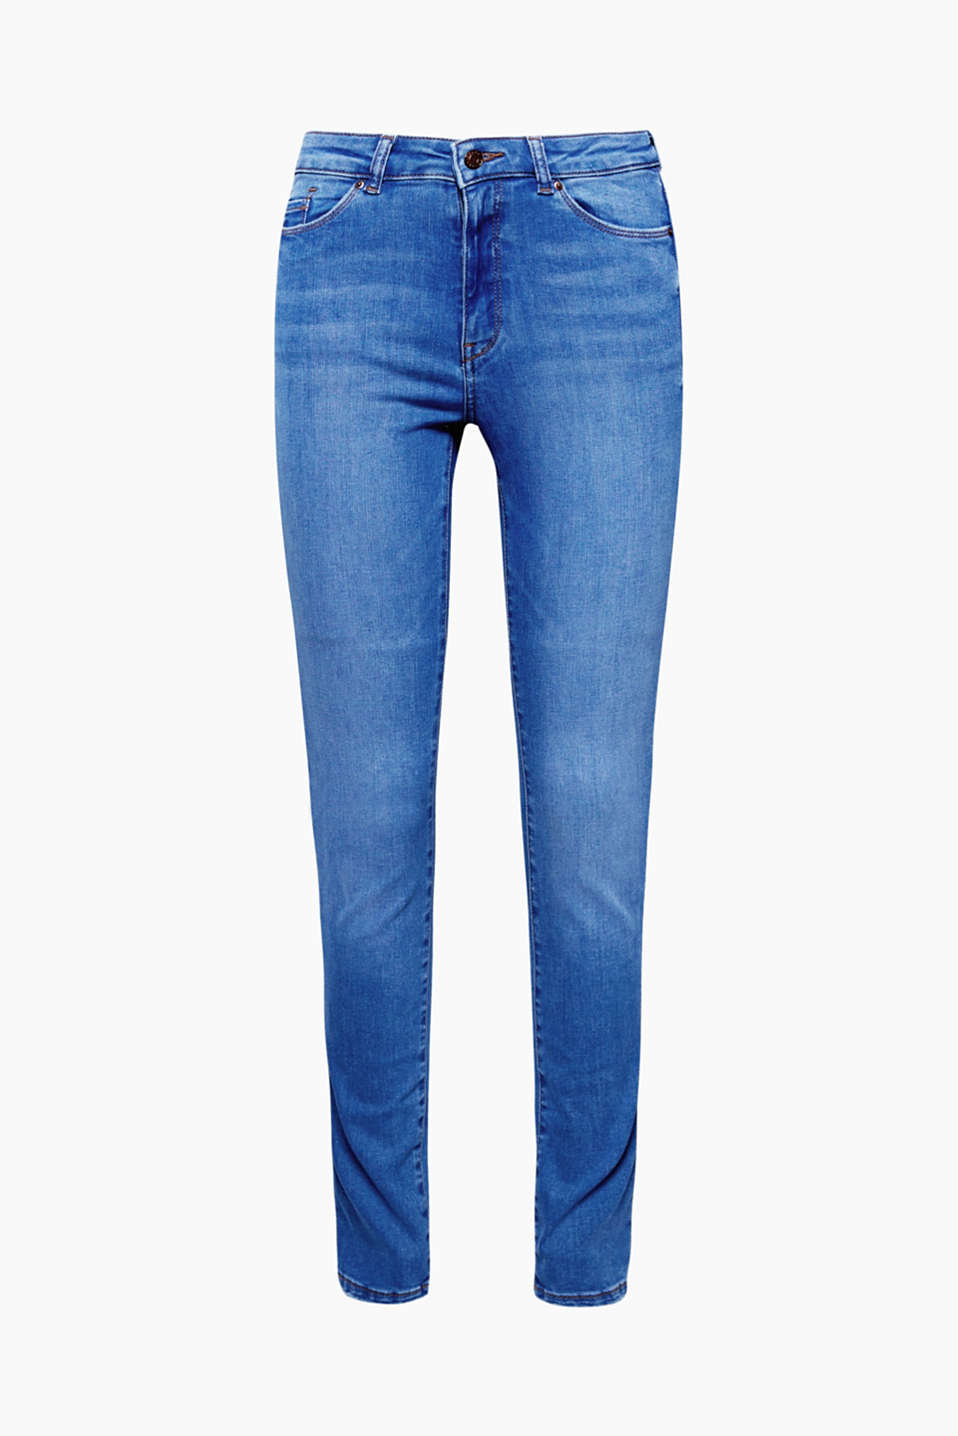 Cool and sexy: these comfortable high-waisted jeans in a clear blue tone gets a special kick from the cut at the knee!